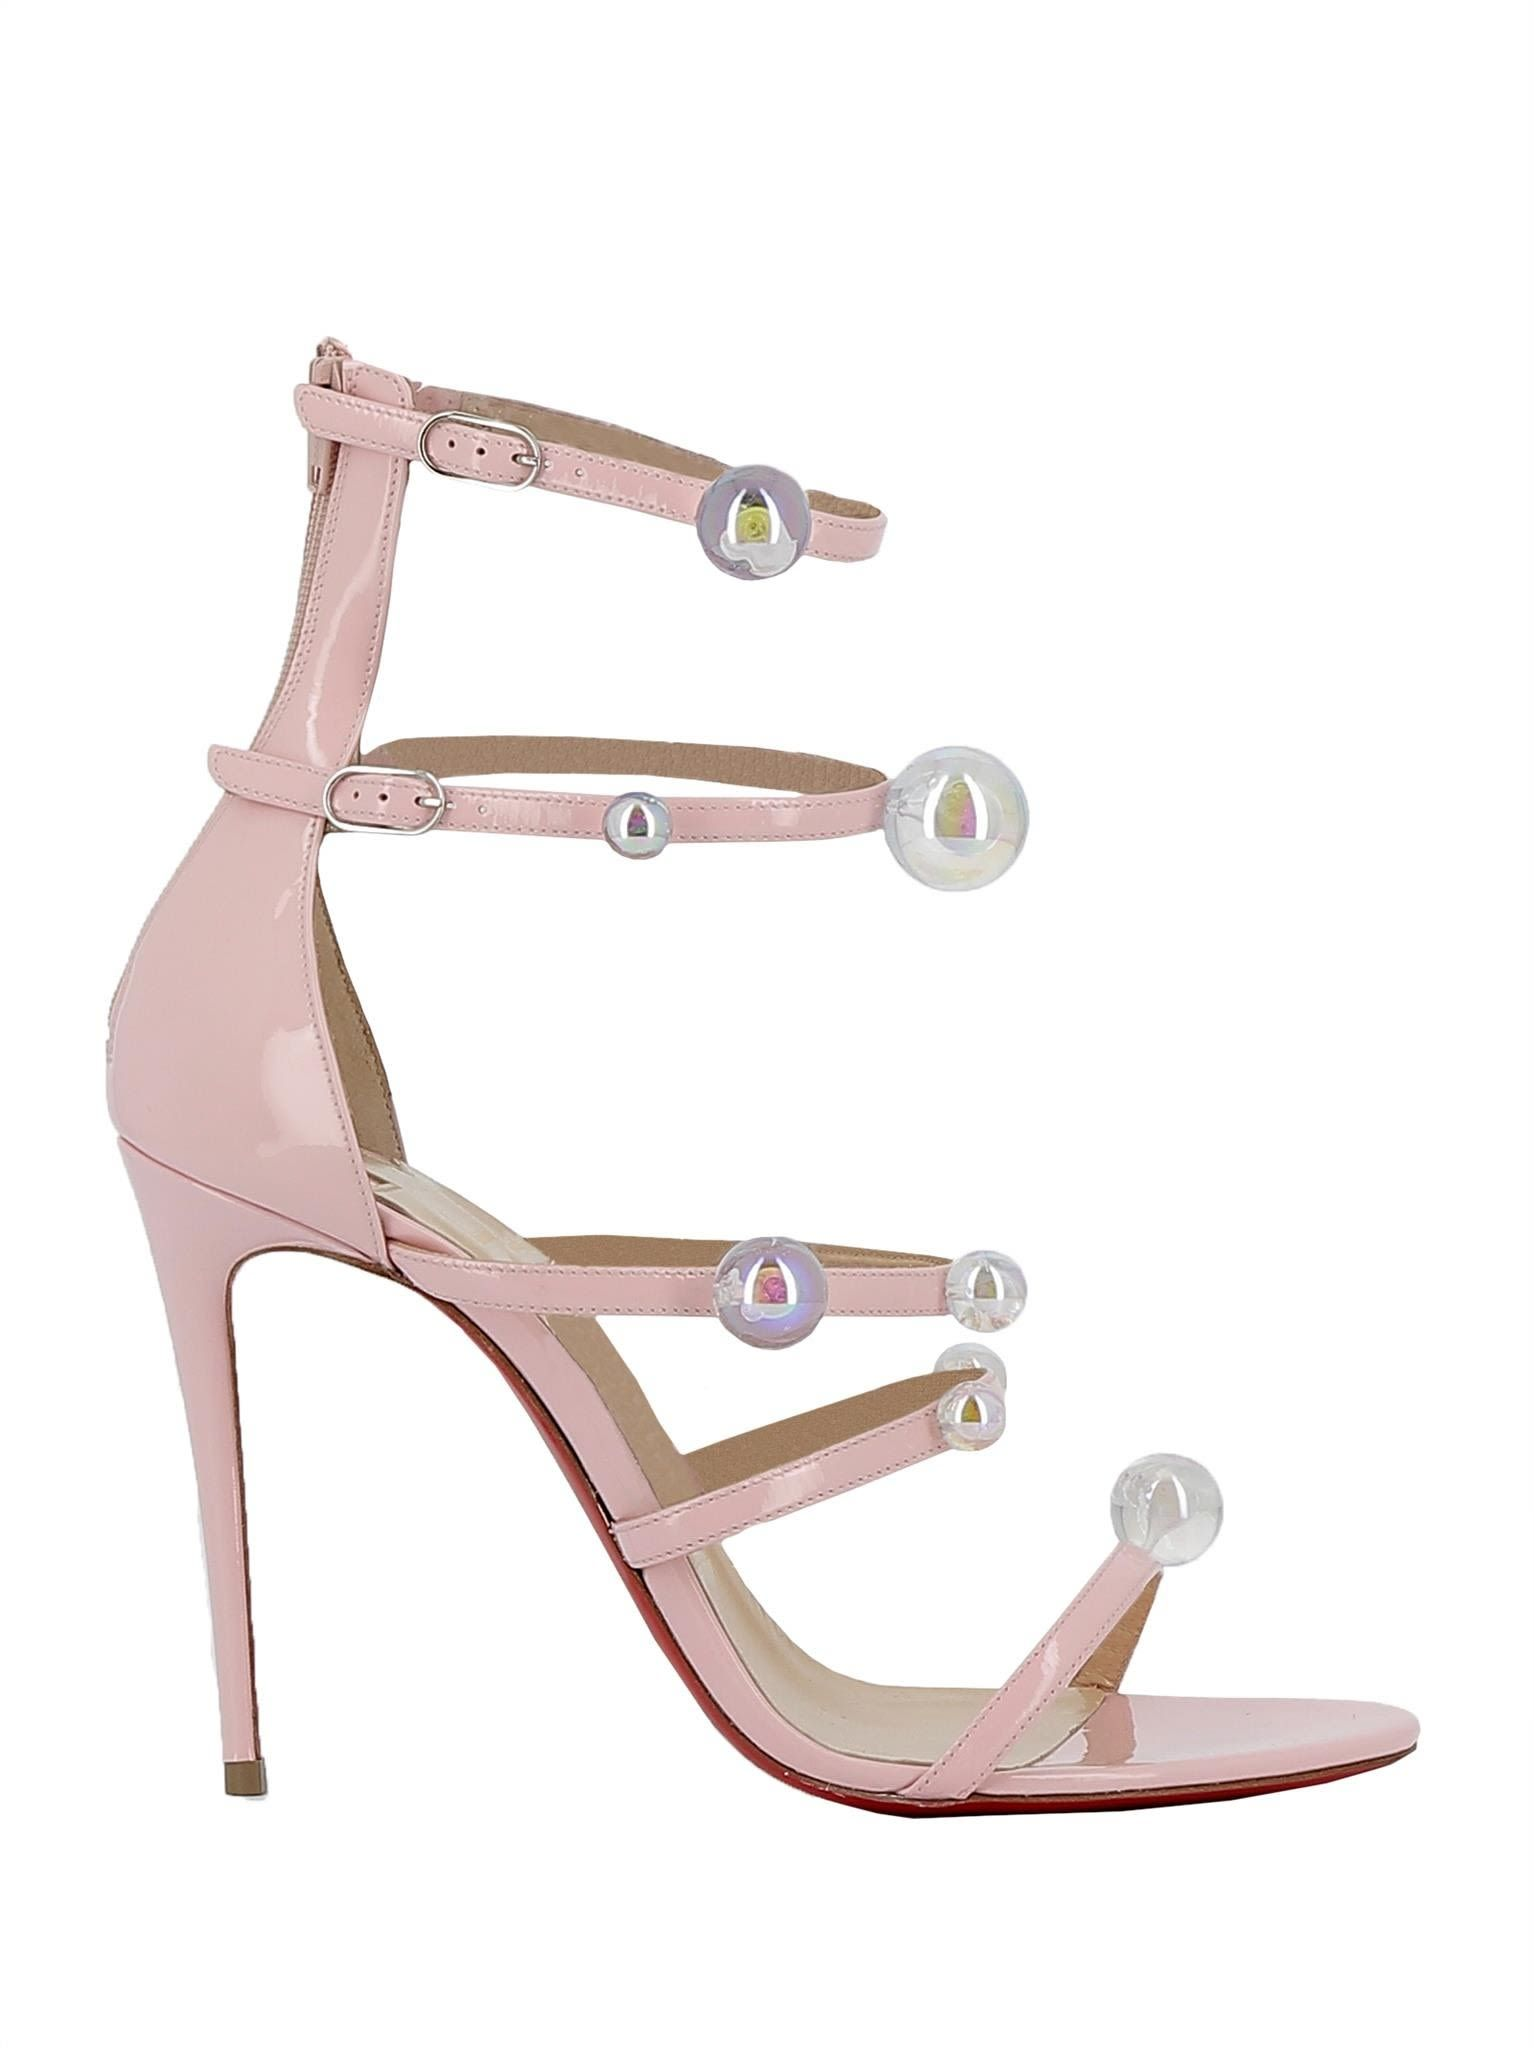 8a4587364d6f ... coupon code christian louboutin christian louboutin christian louboutin  pink patent leather sandals shoes sandals 856d1 13fb1 ...